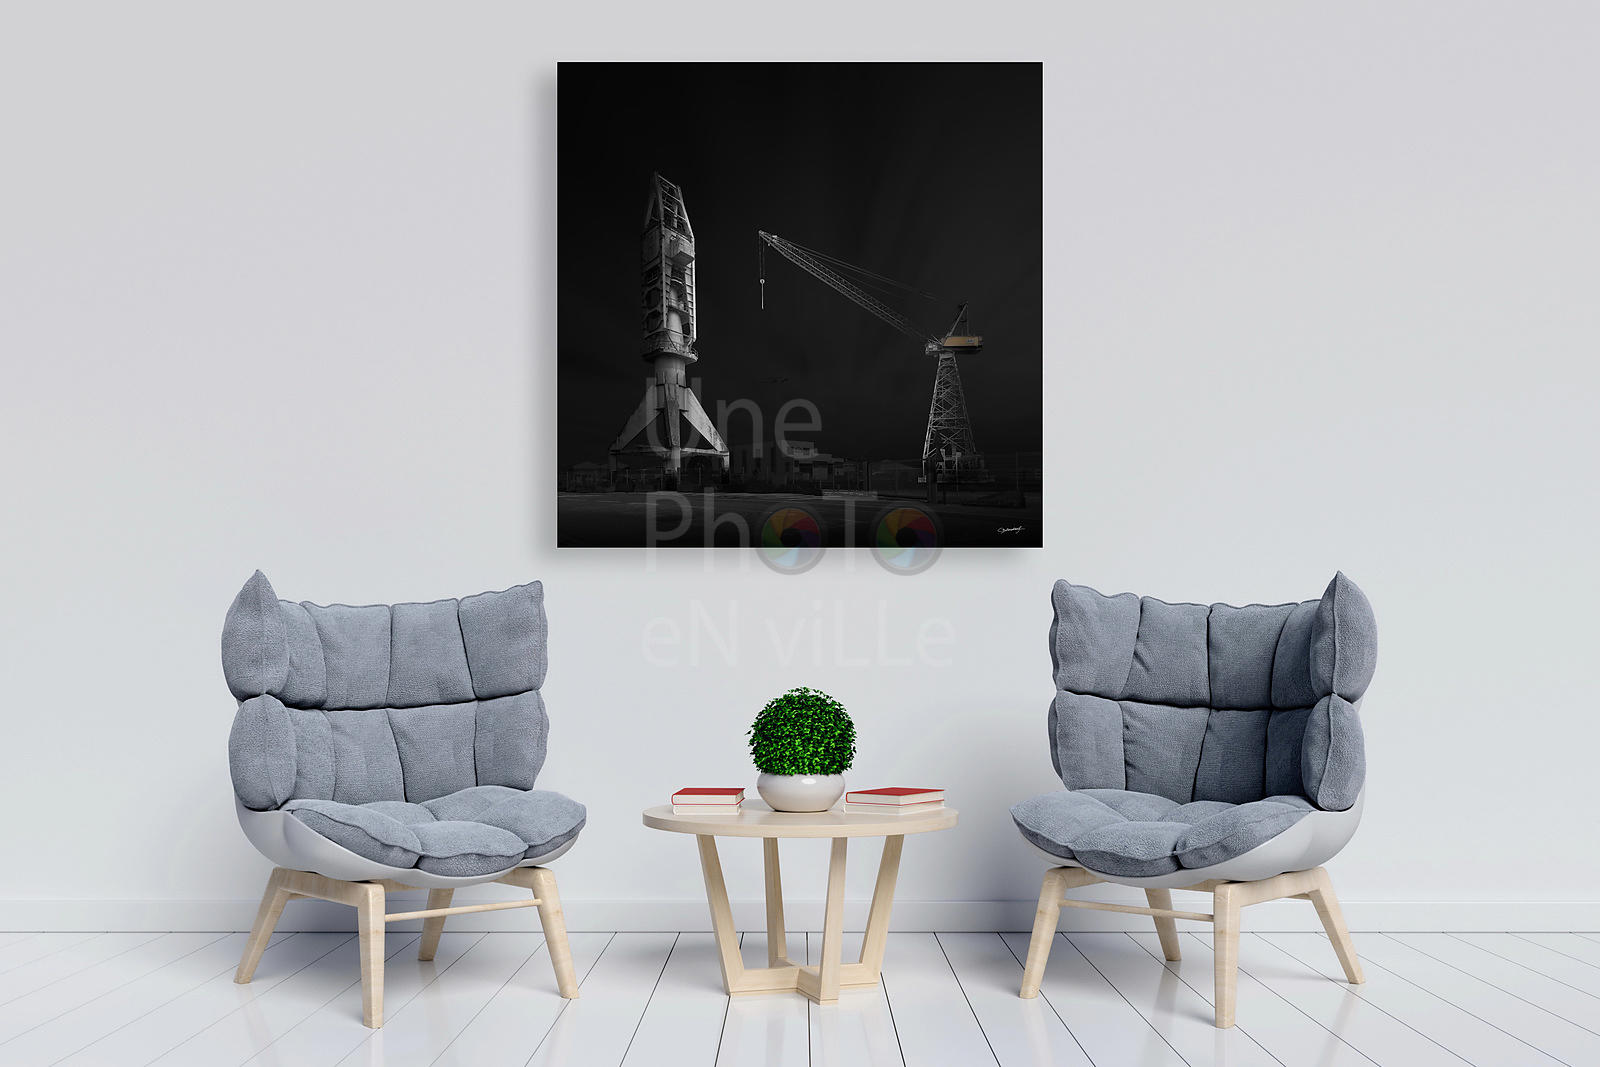 Grues_de_Saint-Nazaire-Une_photo_en_ville-Showroom-Fineart-Photography-267